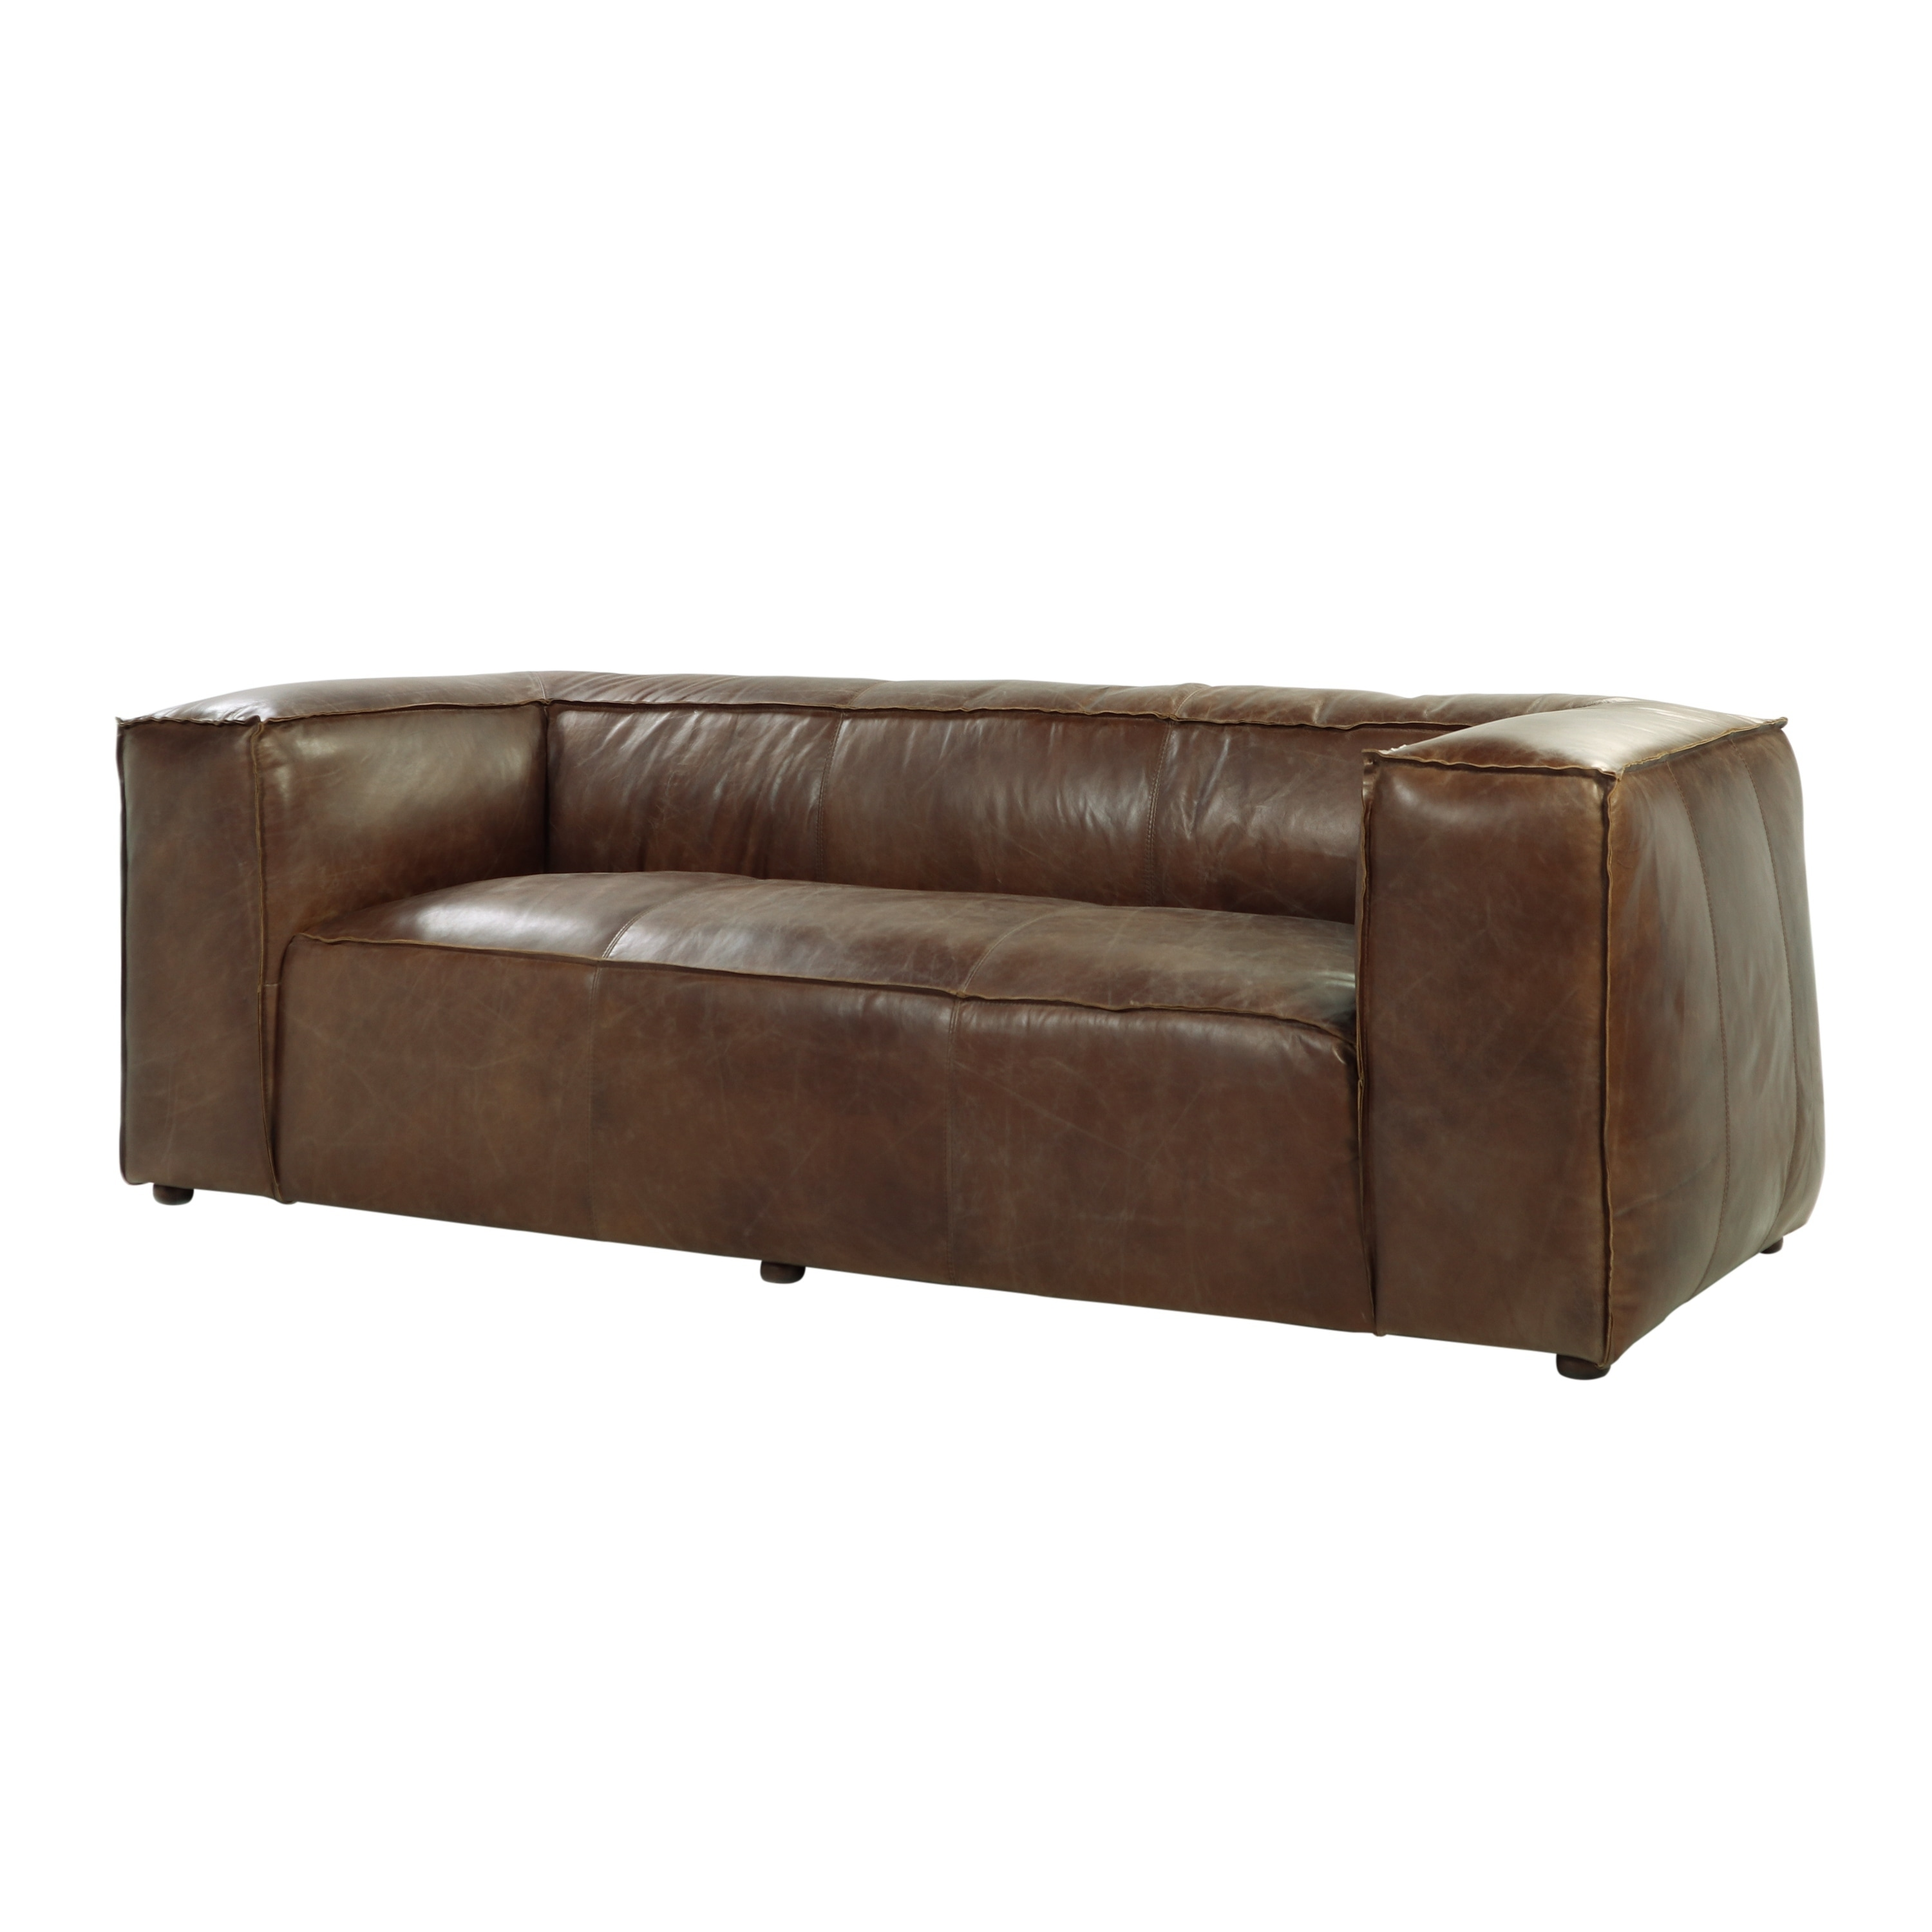 Acme Furniture Brancaster Top Grain Leather Sofa Retro Brown Free Shipping Today 17668711